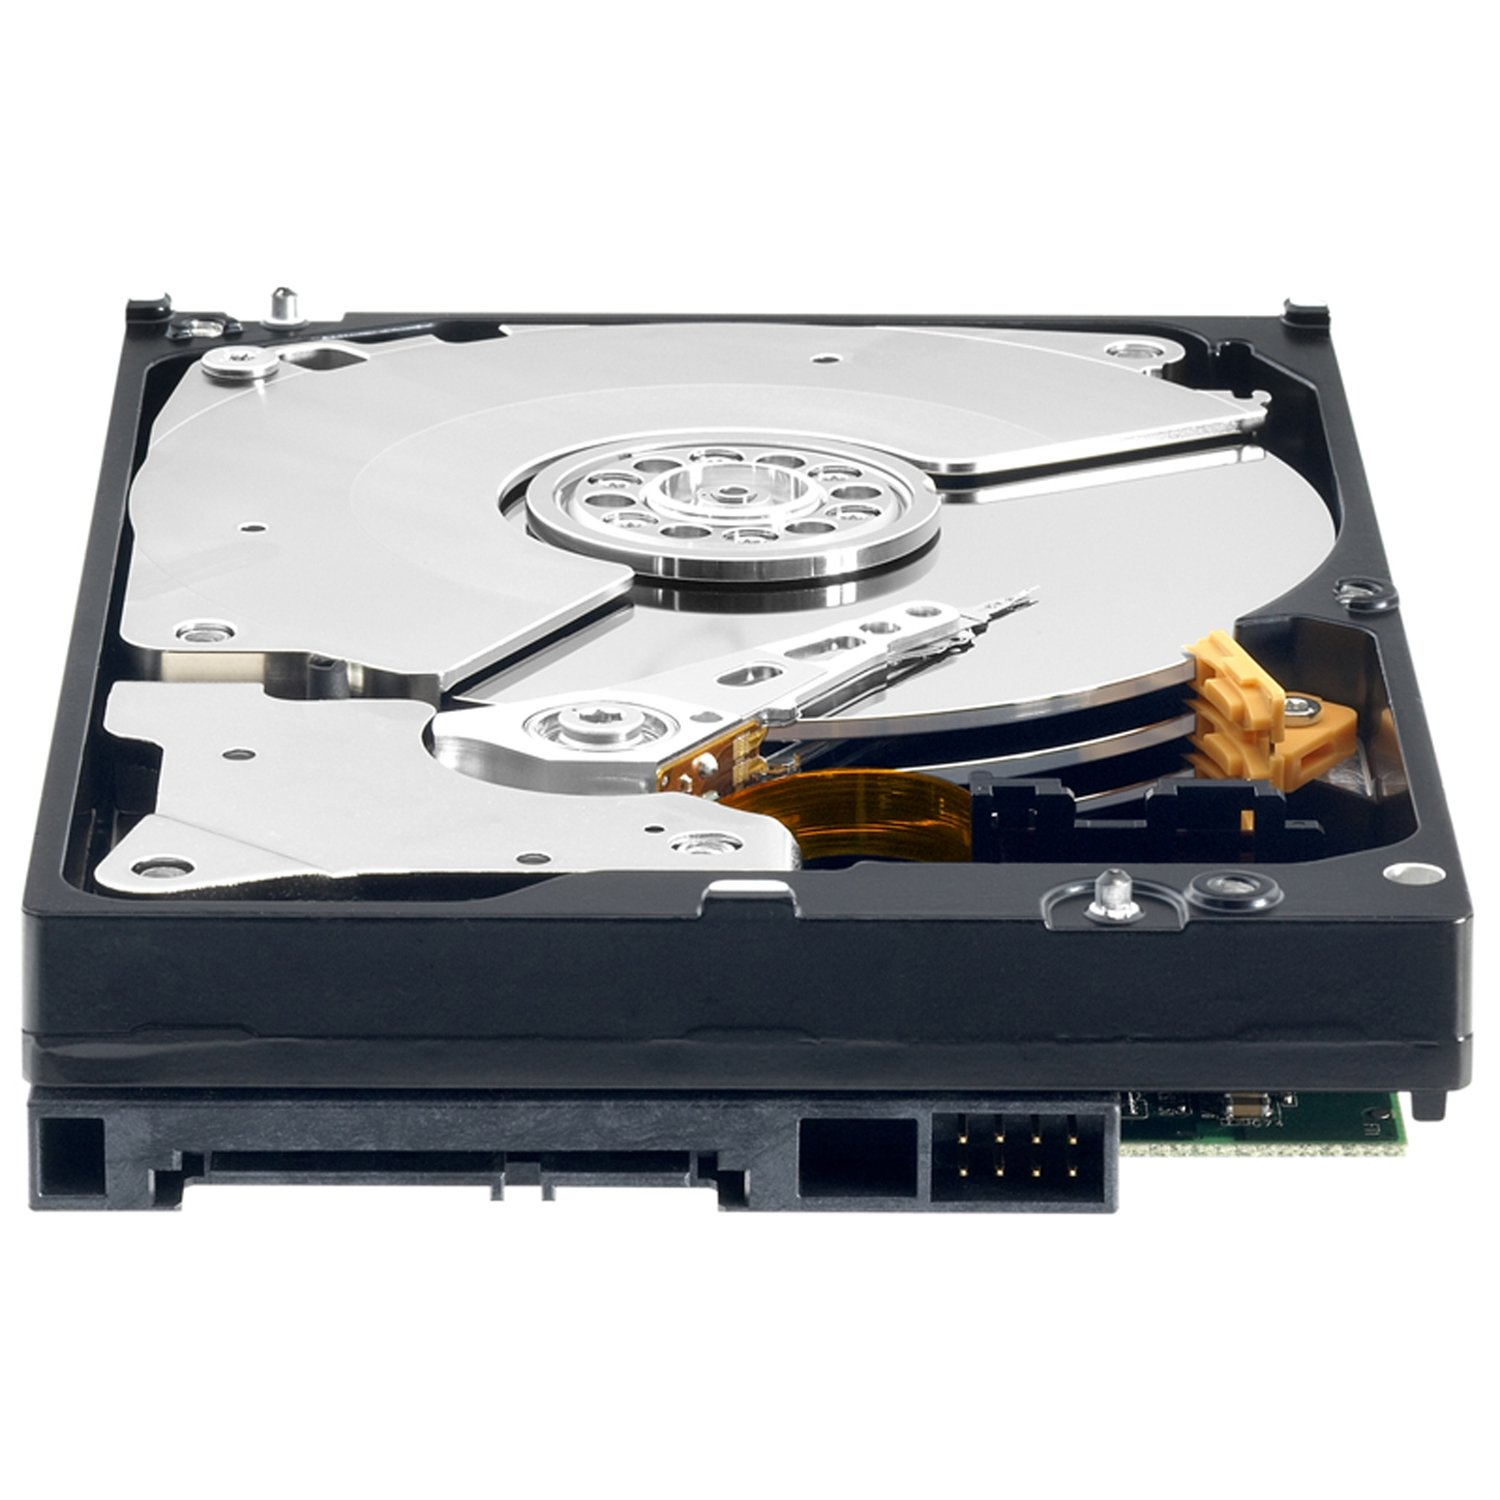 New Western Digital RE4 WD5003ABYX 500GB SATA2 7200rpm 64MB Enterprise Hard Drive 3.5 Inch by Western Digital (Image #2)